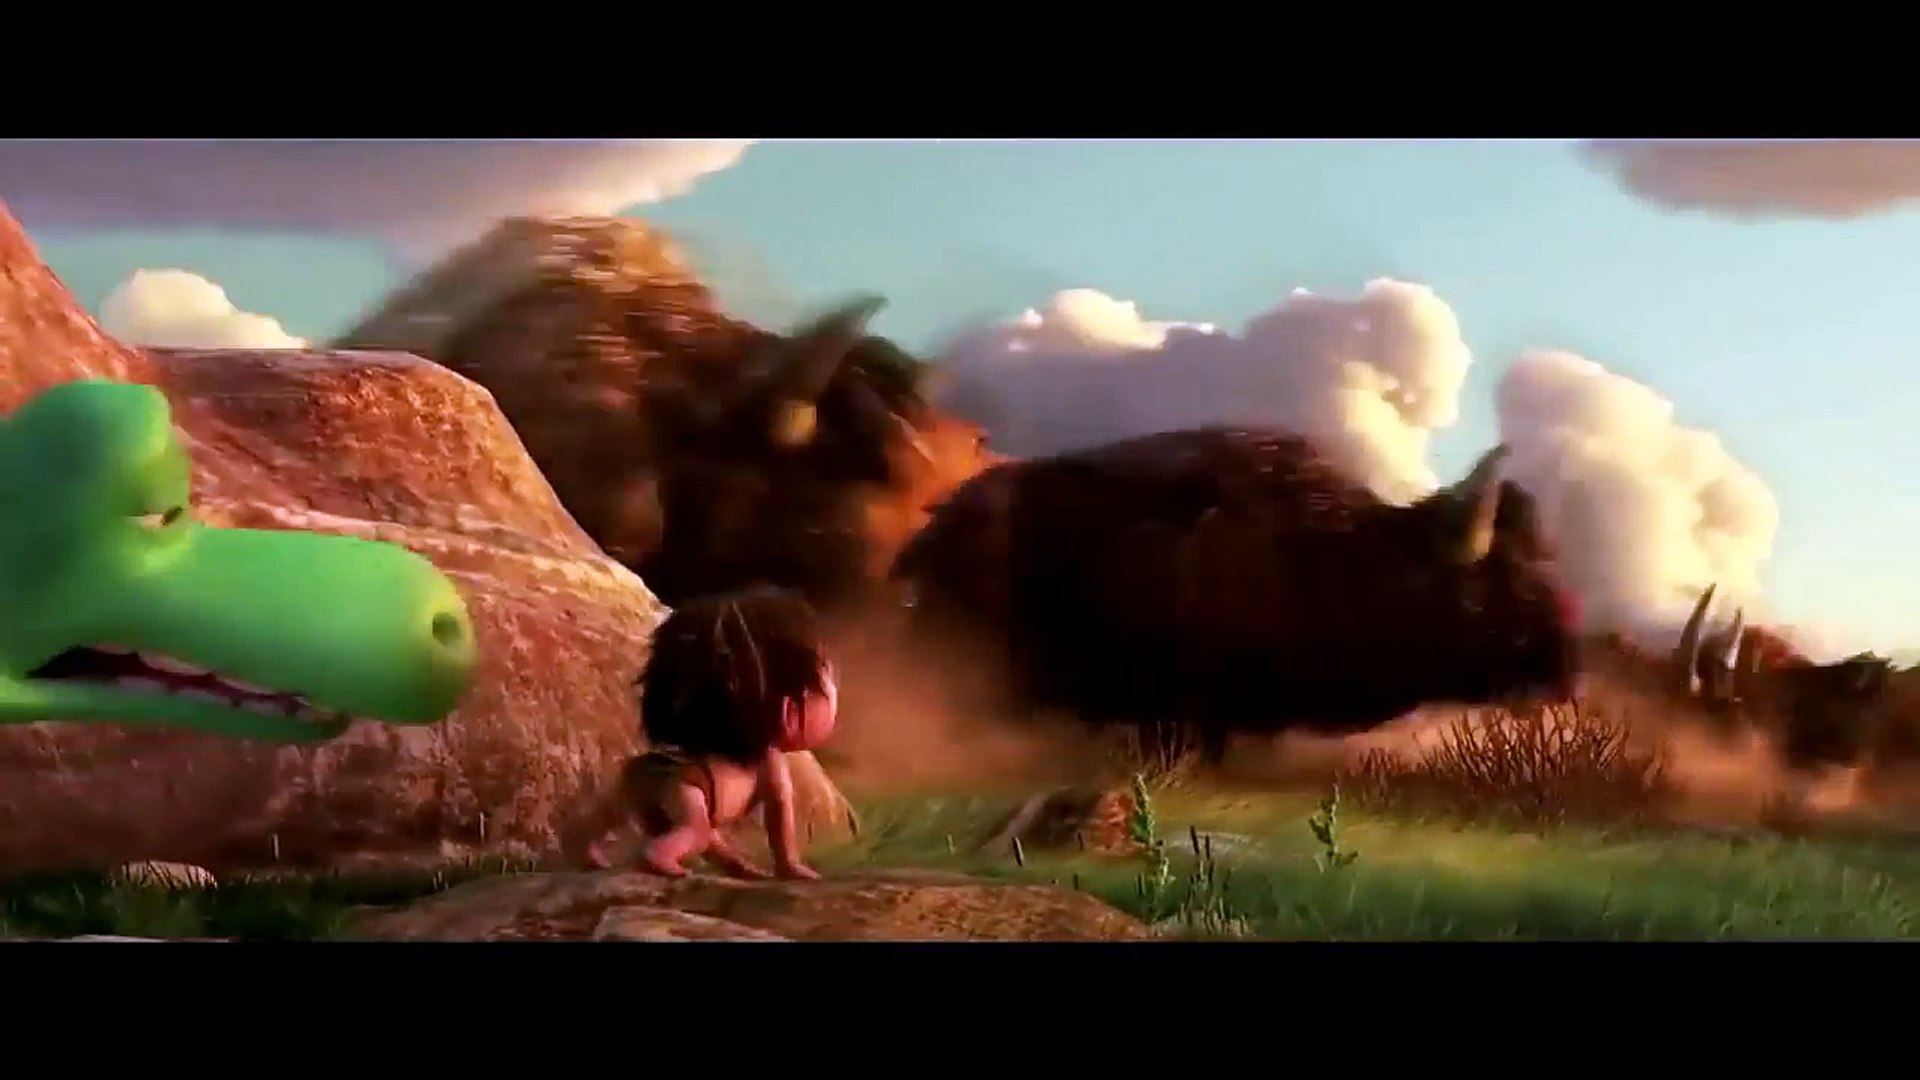 Cartoons for Kids Compilation Just for Kids Entertainment - The Battles Of Heroes